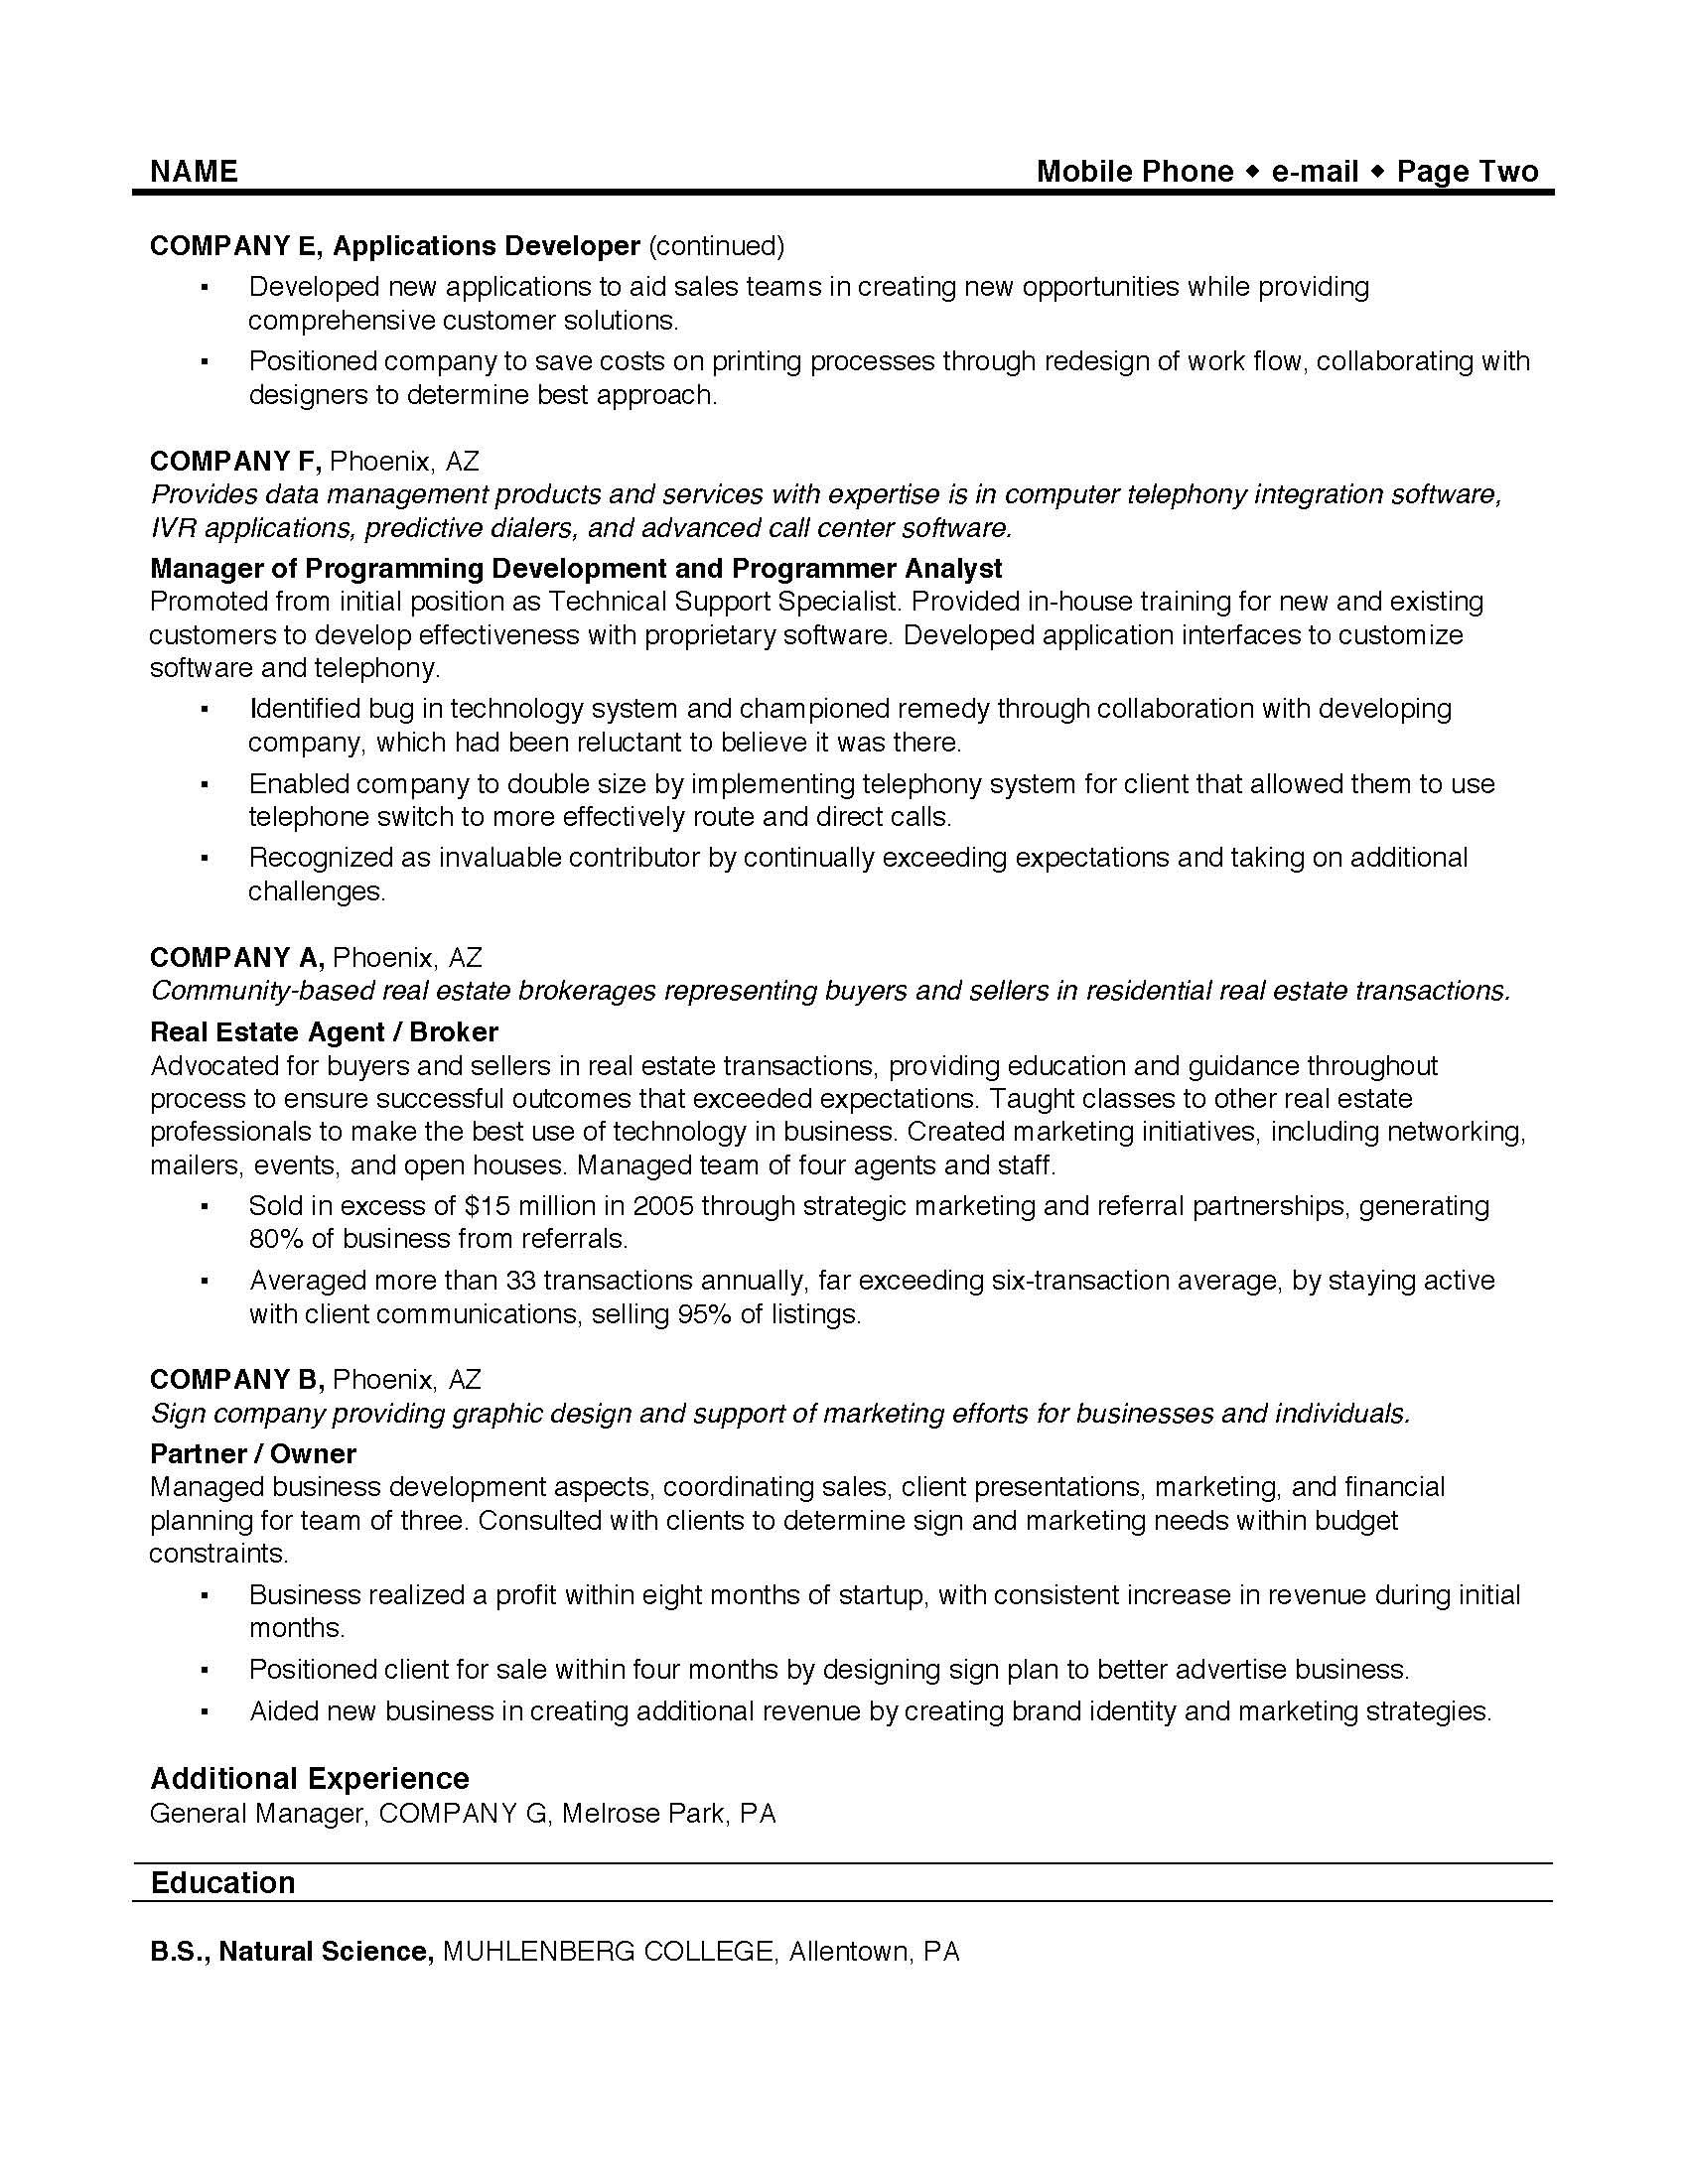 Resume Examples For College Students Pics Photos Sample College Student Resume Examples Samples Resumes